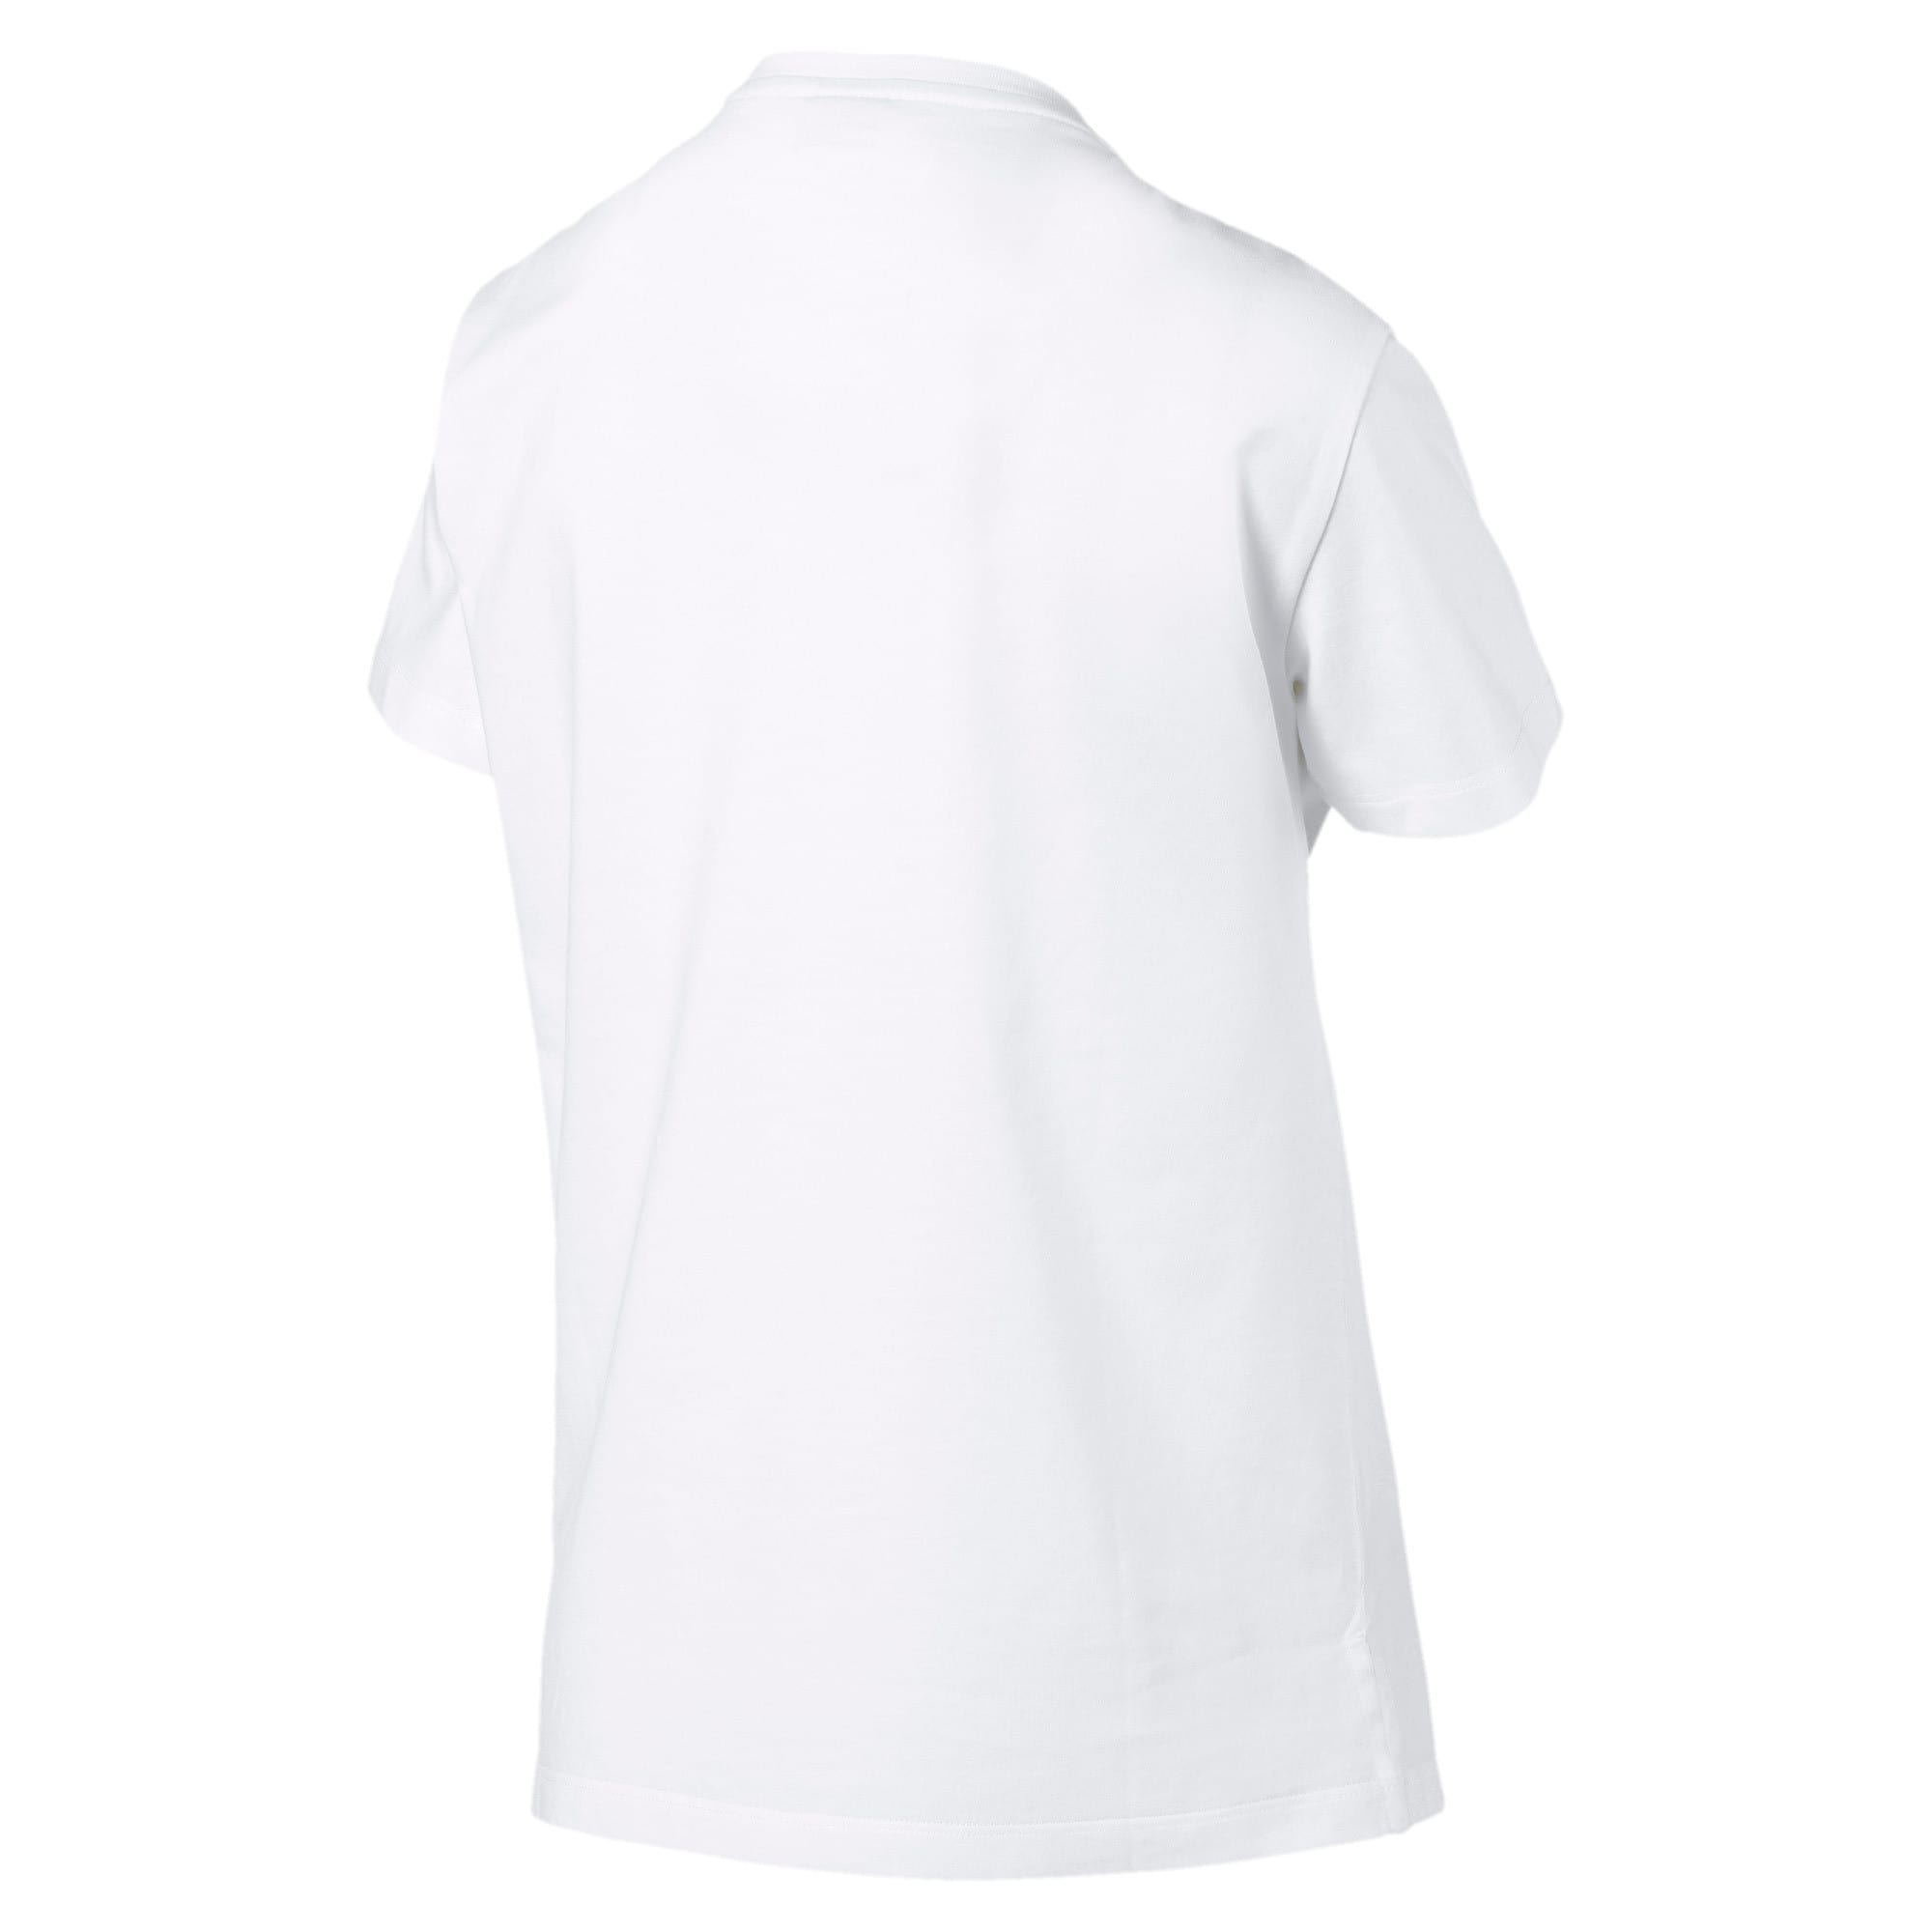 Thumbnail 5 of Classics Women's Logo Tee, Puma White, medium